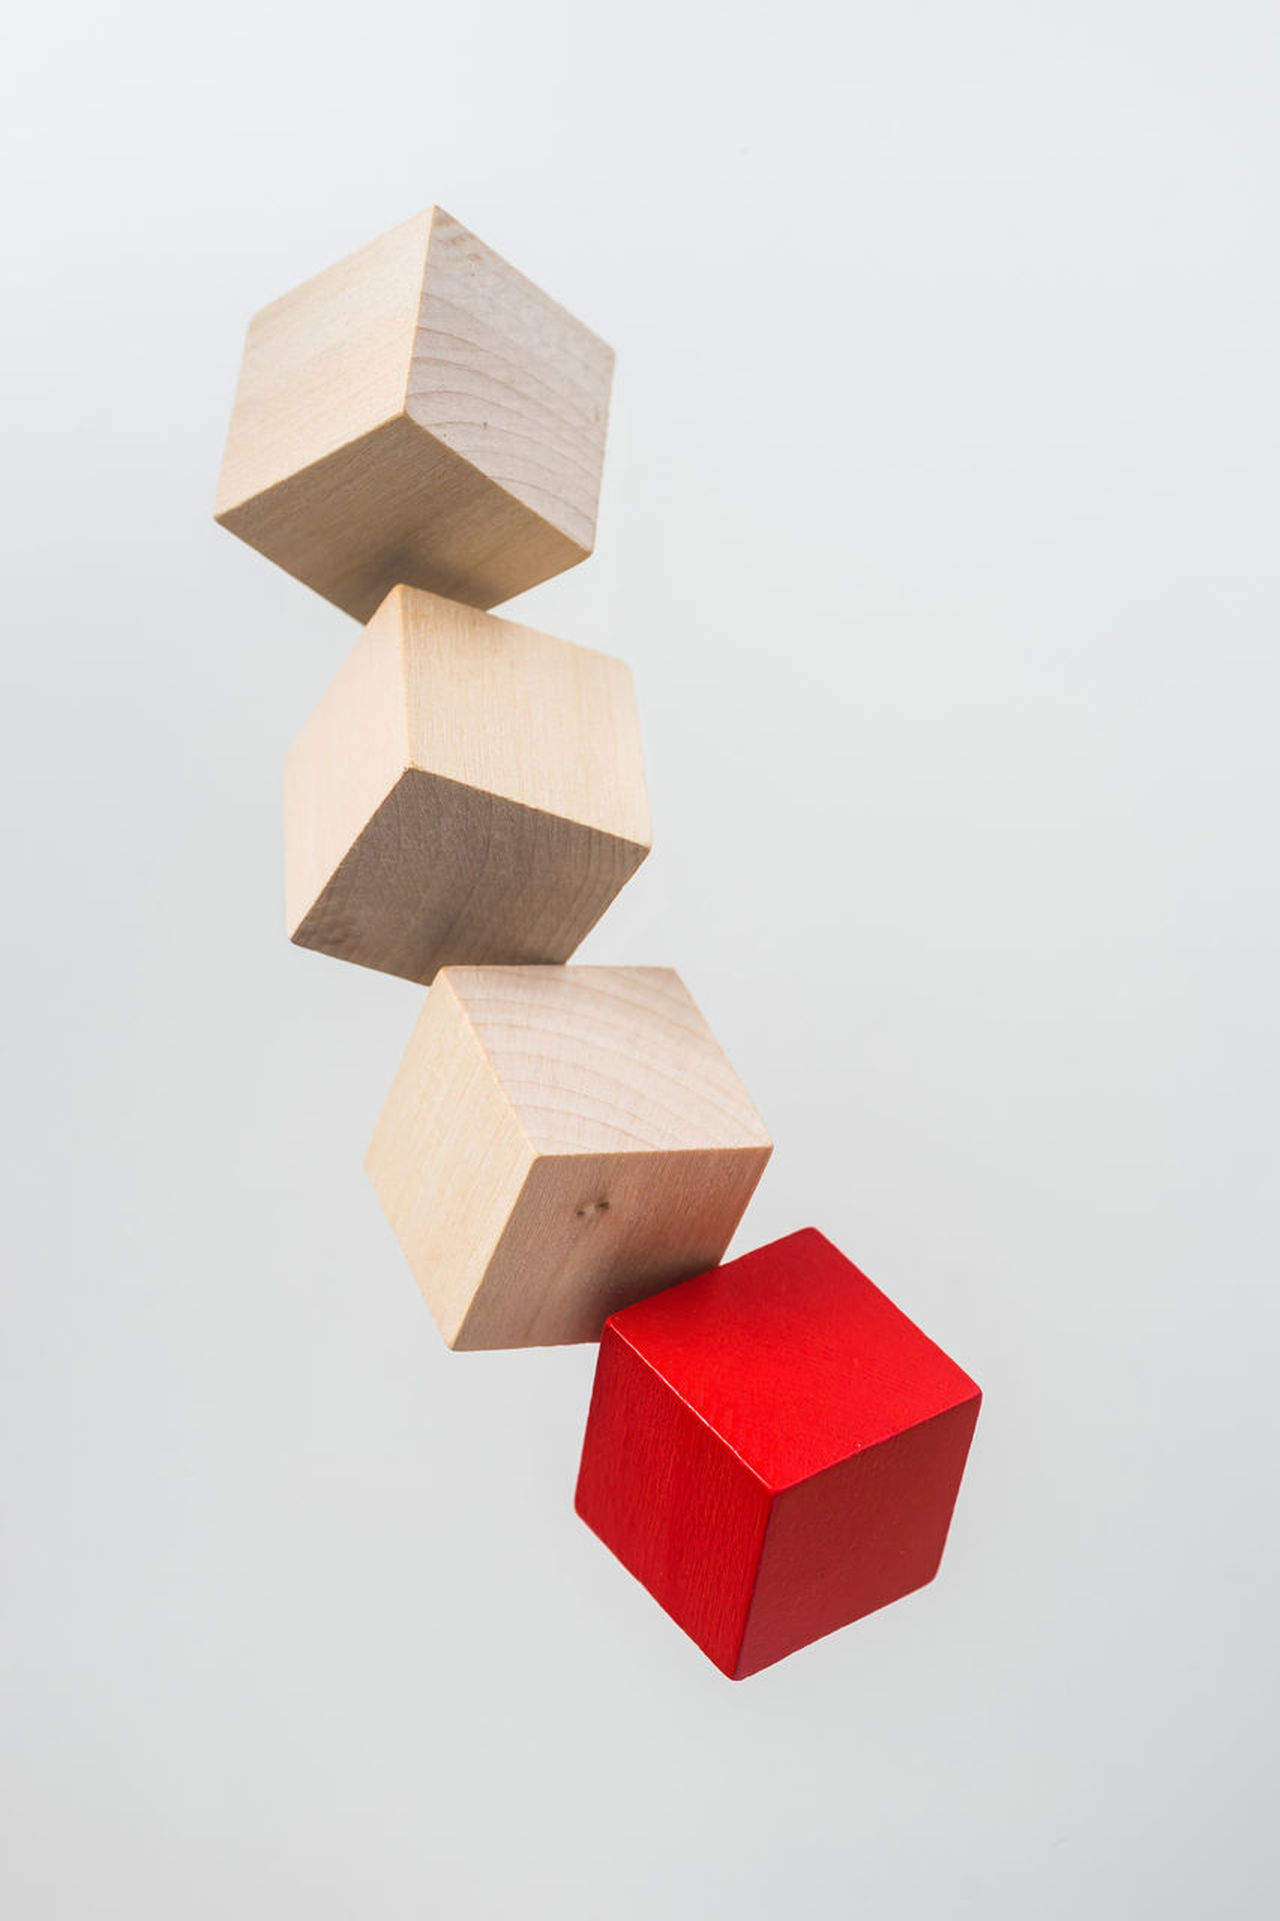 Business concept - Abstract geometric real floating wooden cube on grey background and it's not 3D render. the symbol of leadership, teamwork and growth. Balance Close-up Cube, Wooden, Wood, Float, Zero Gravity, Fly, Abstract, Geometric, Geometry, Block, Cubic, Business, Concept, Create, Design, Idea, Object, Progress, Creativity, Minimalism, Simplicity, Simple, Square, Isolated On White Background, No 3D Render, Connectio No People Puzzle  Red Studio Shot Toy Block White Background Wood - Material